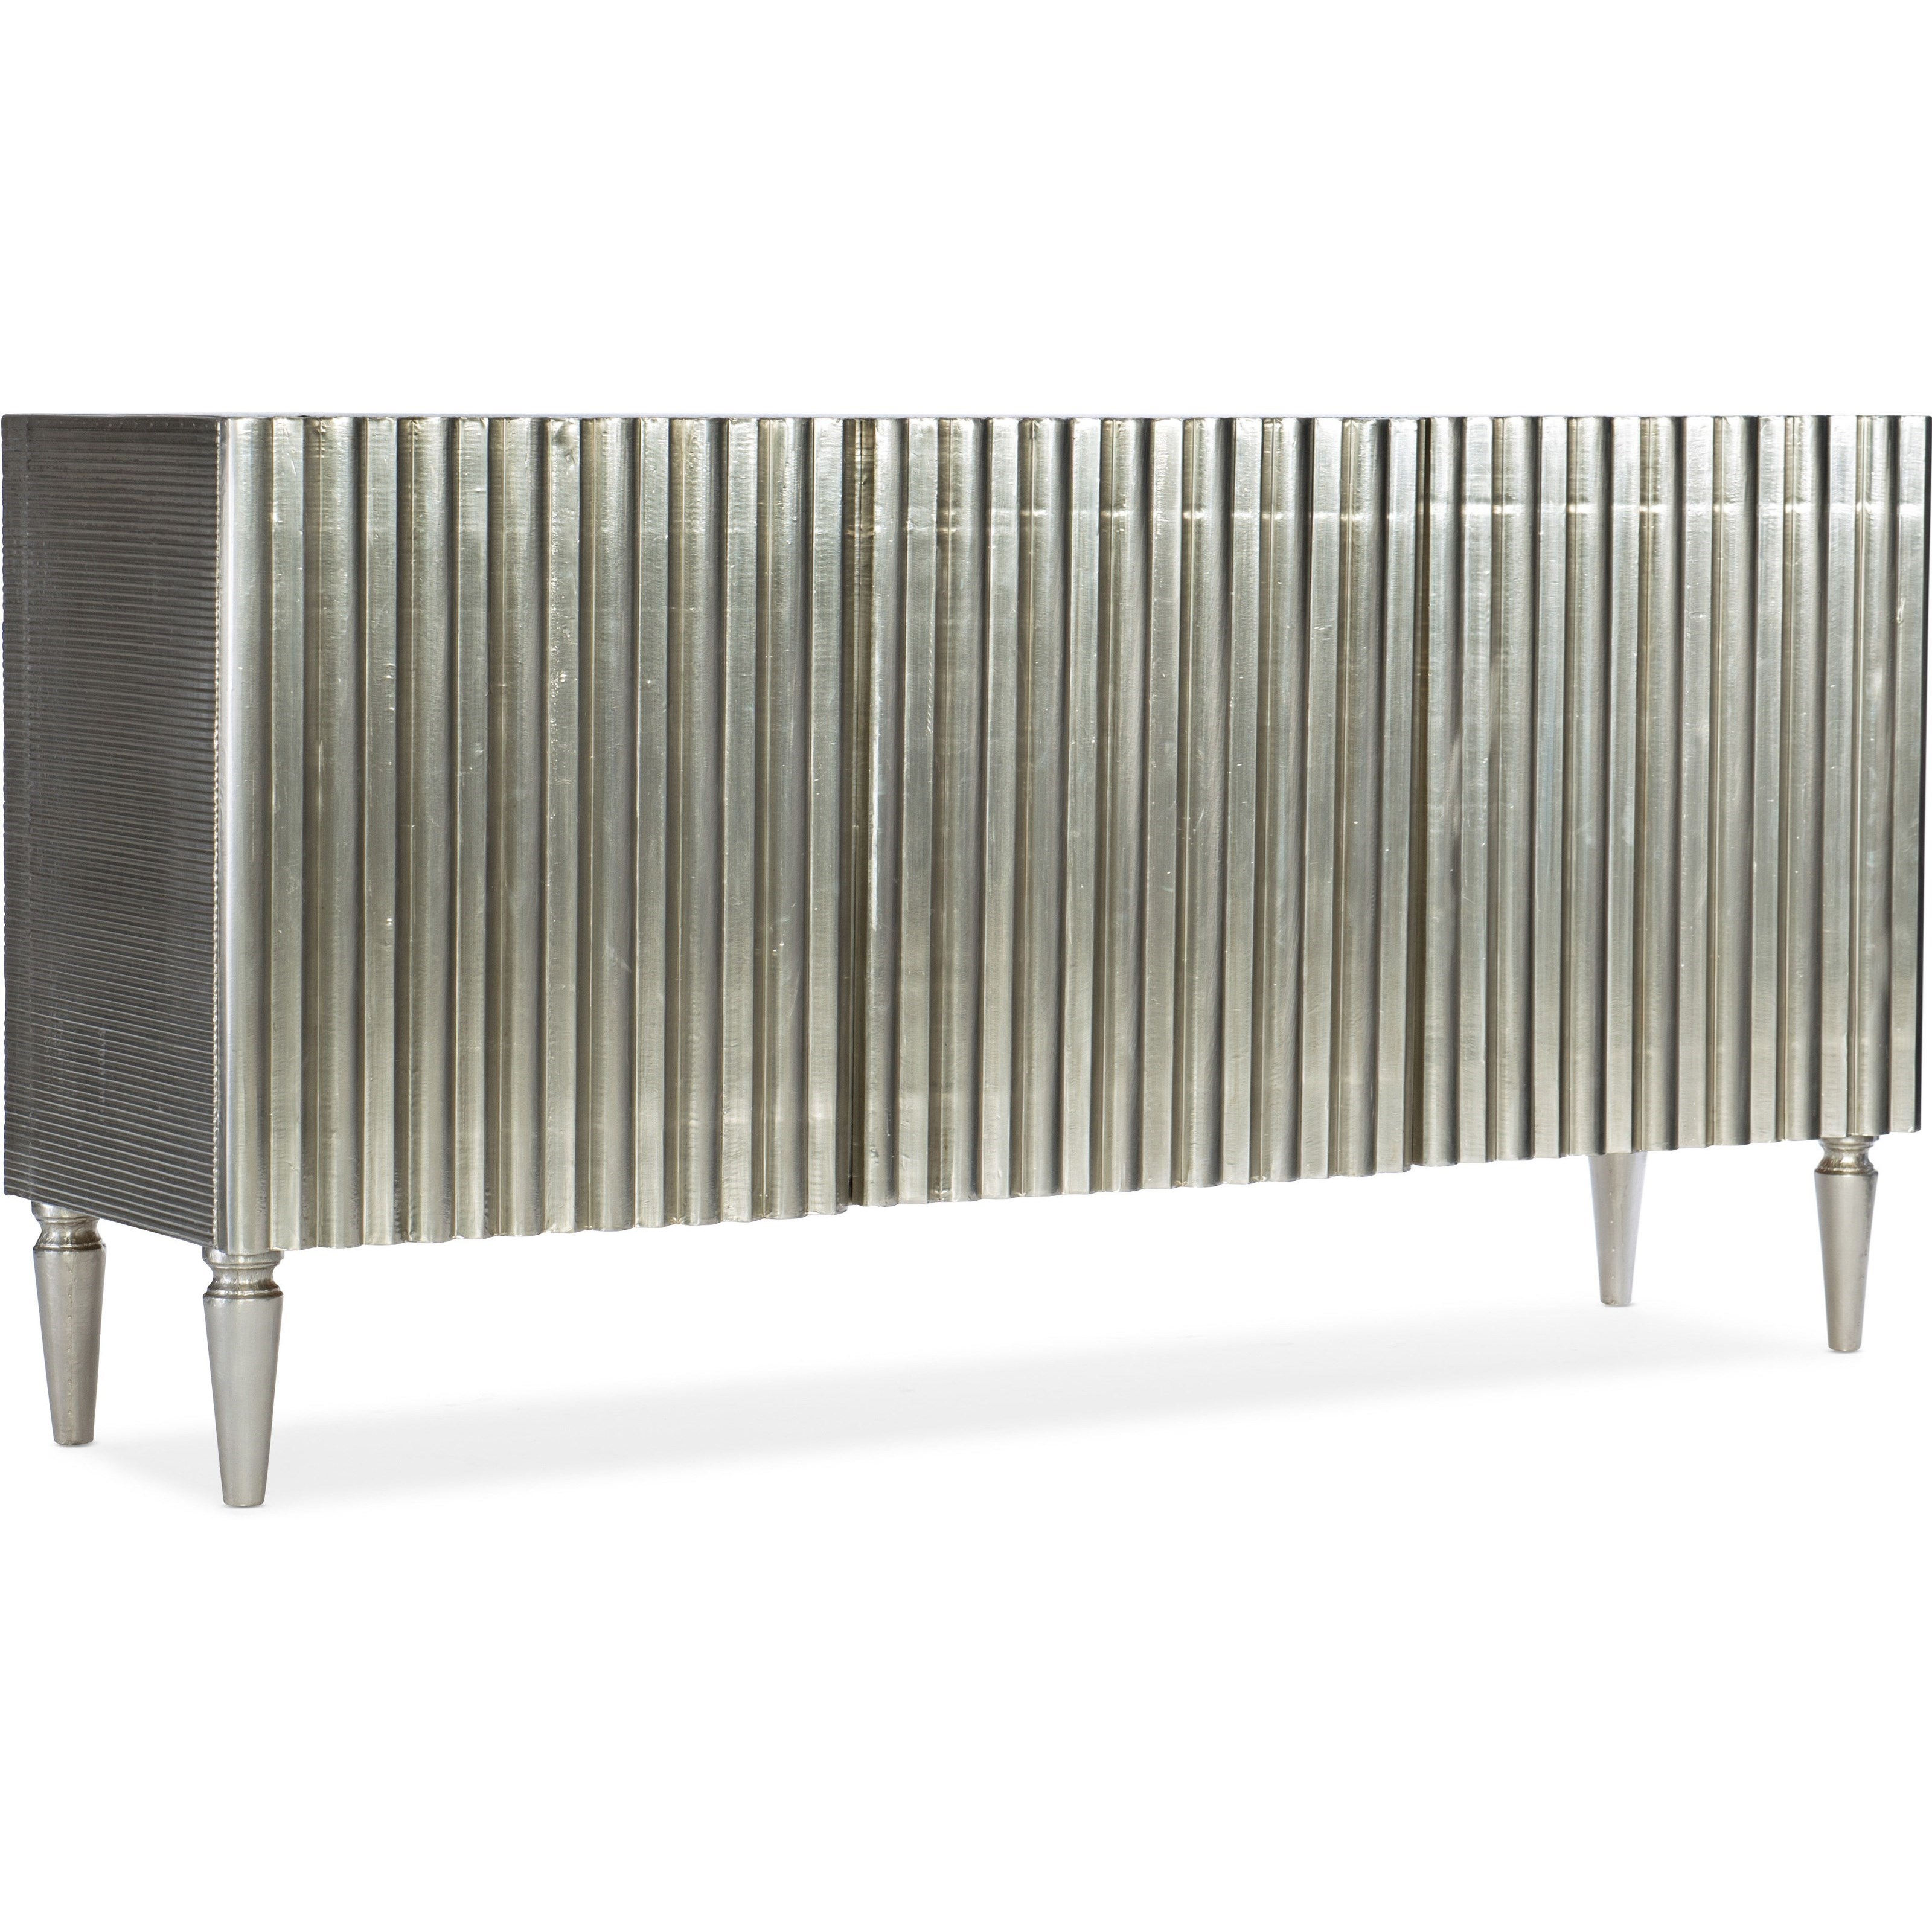 Living Room Accents German Silver Console by Hooker Furniture at Alison Craig Home Furnishings